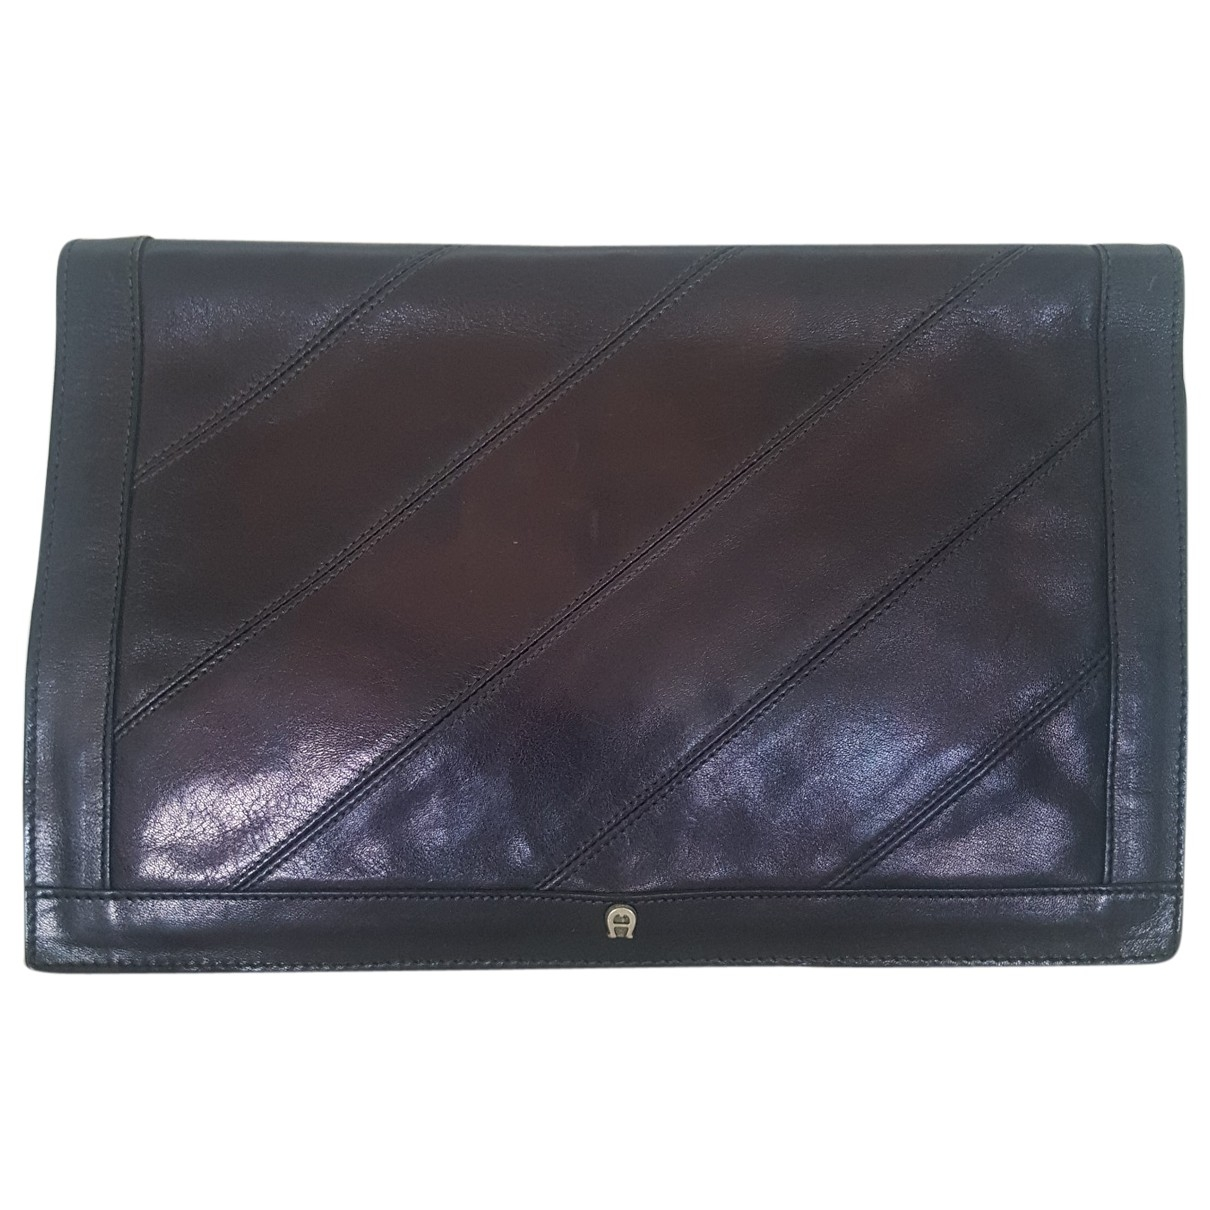 Aigner N Black Leather Clutch bag for Women N